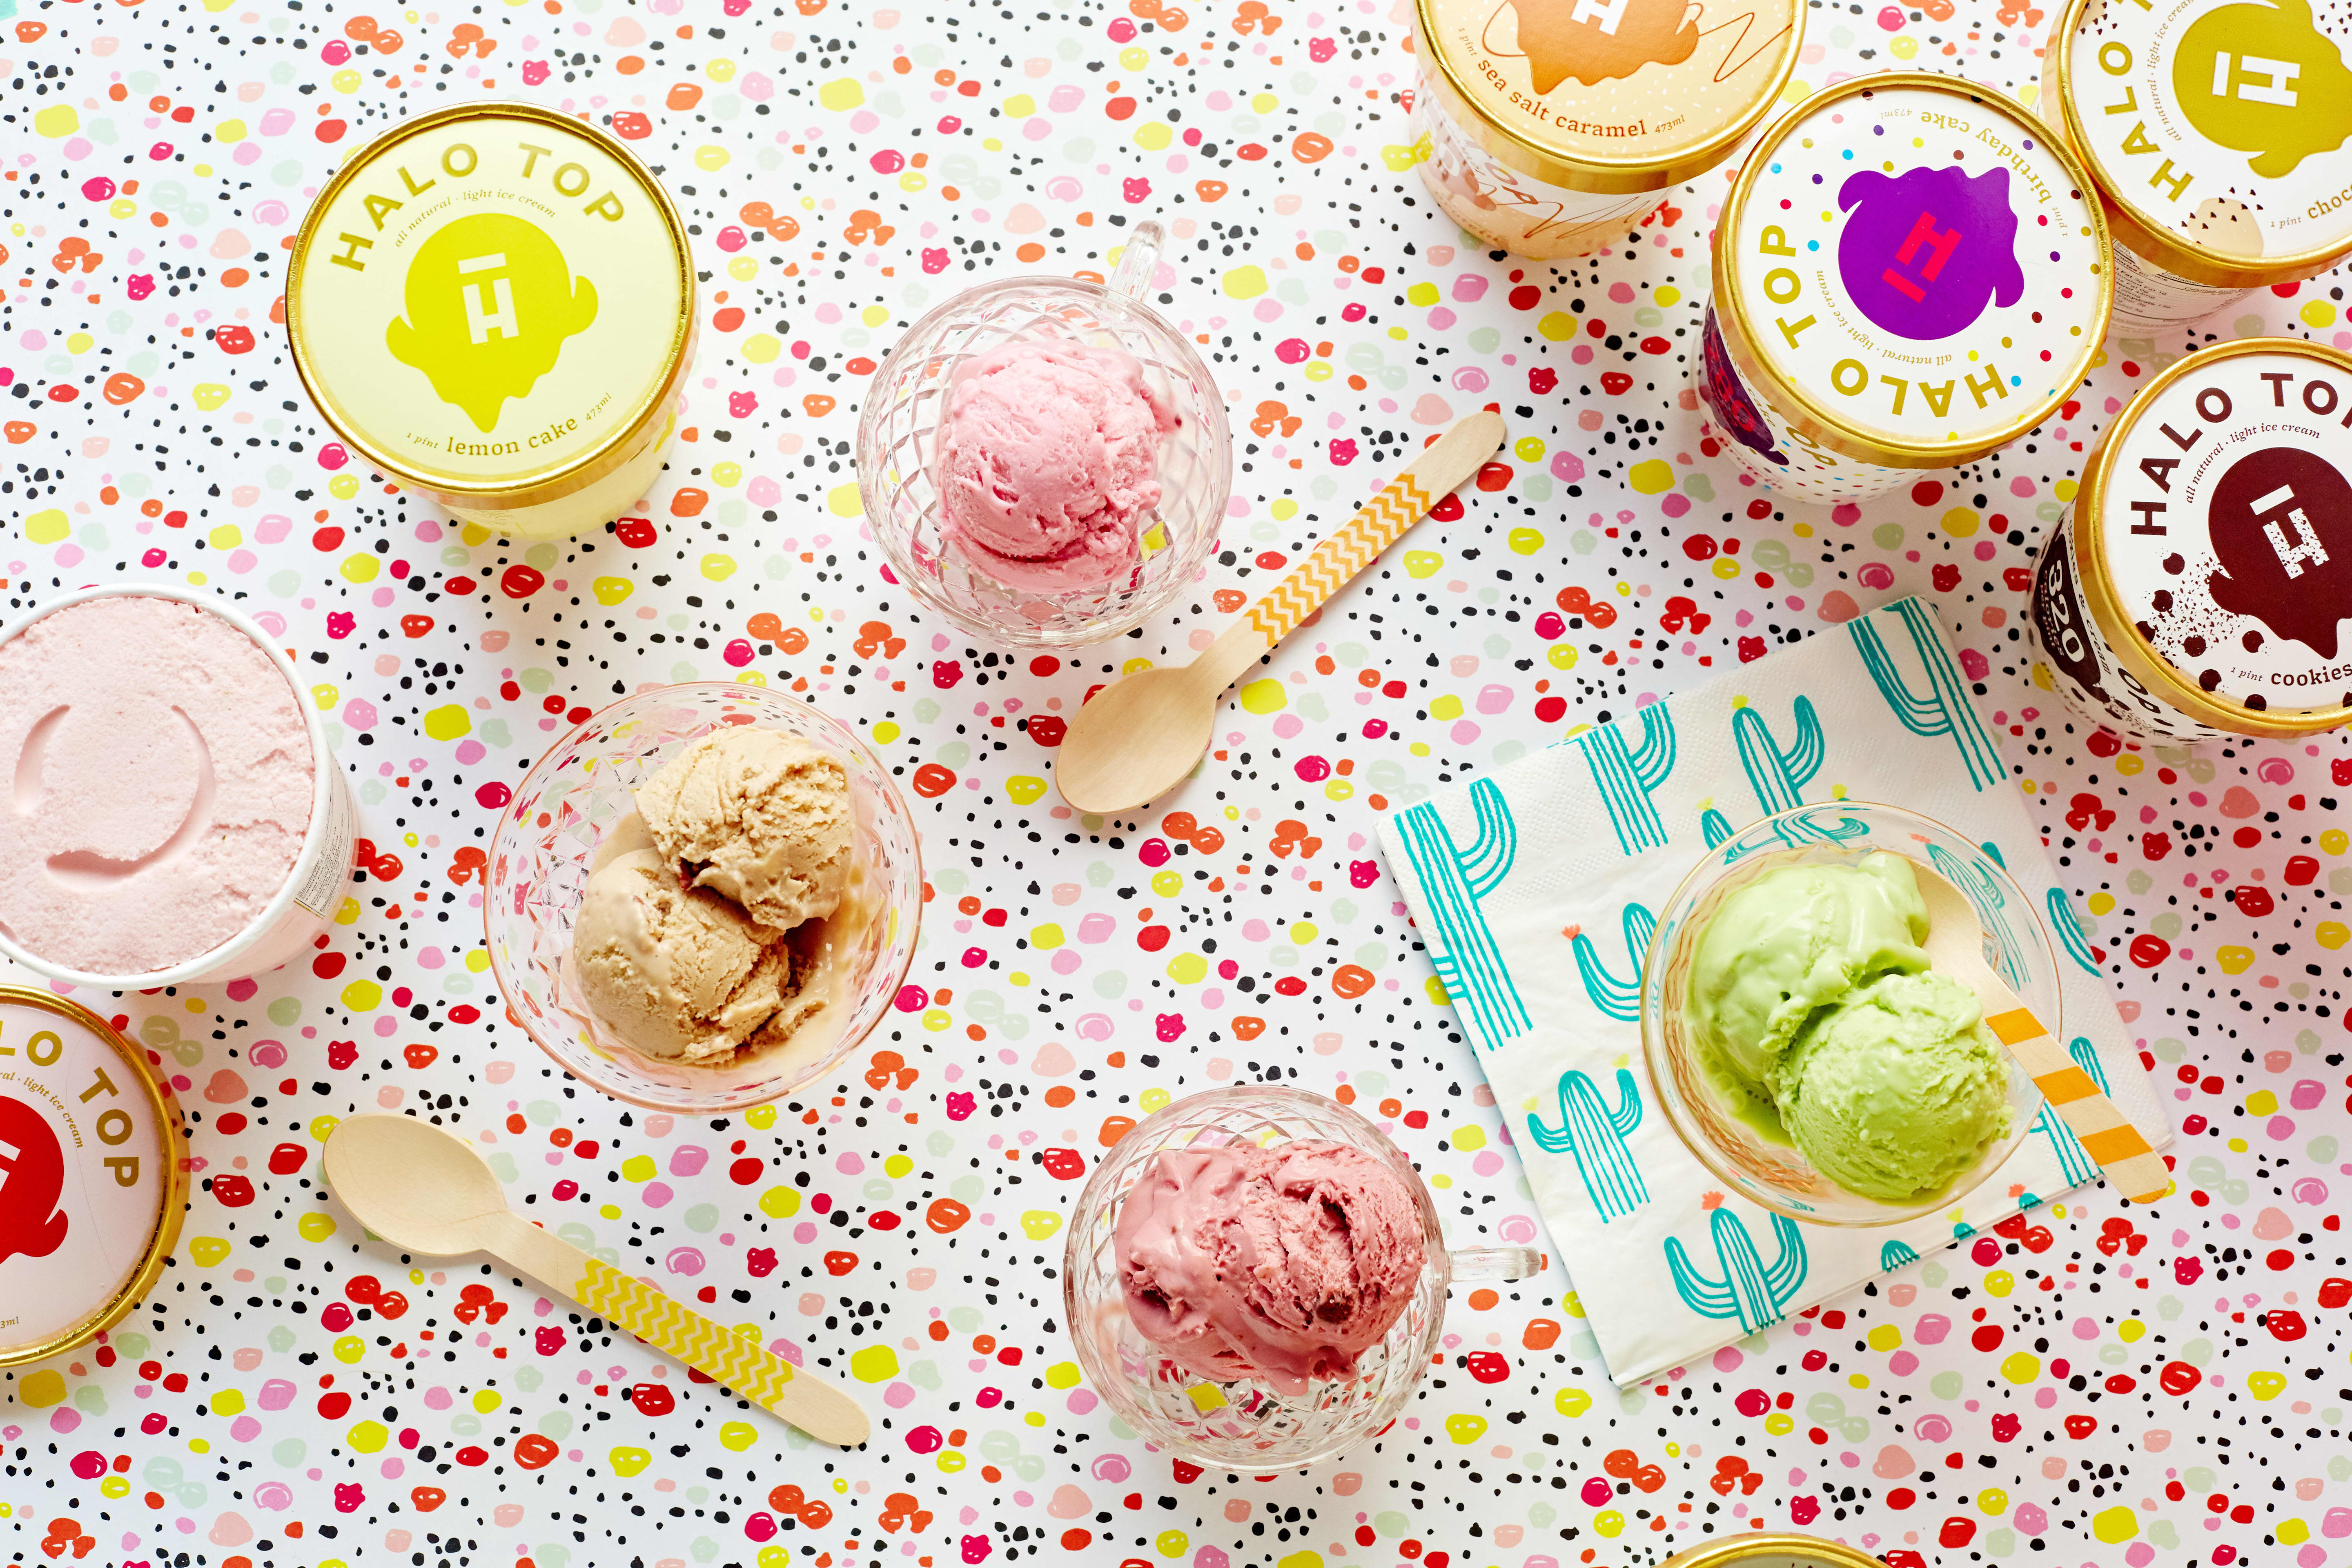 Whats The Deal With Halo Top Ice Cream